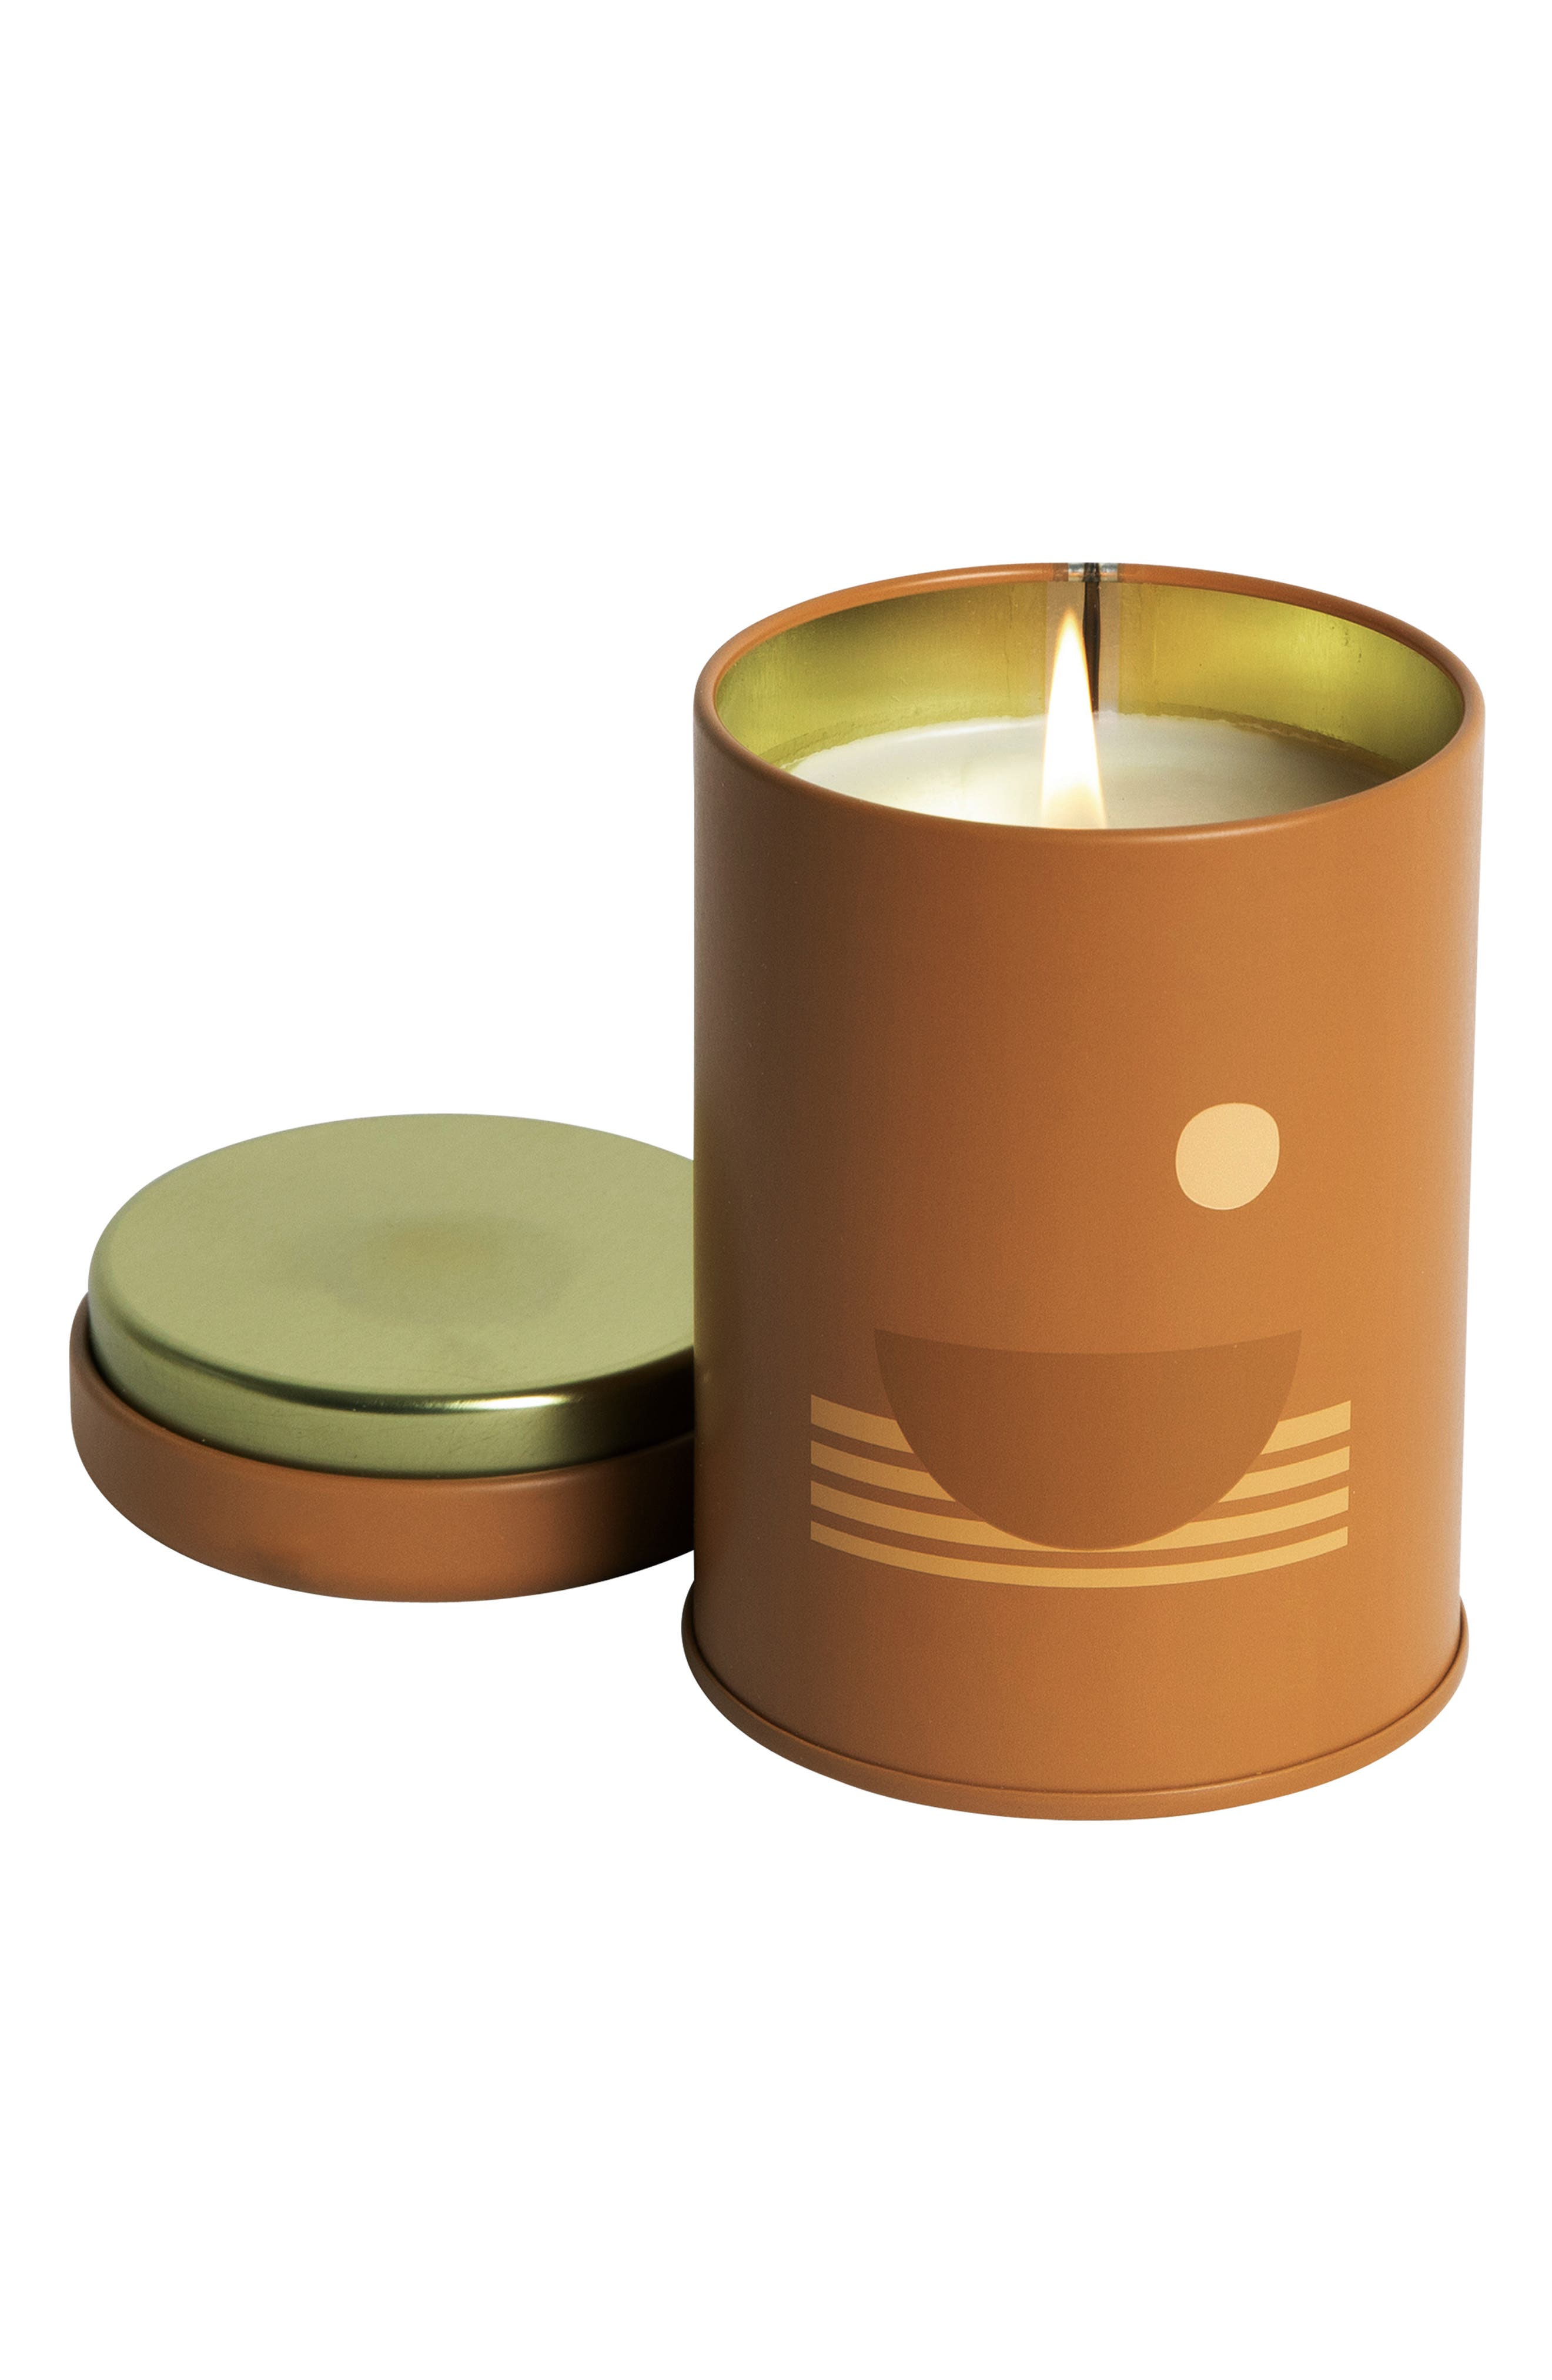 What it is: A candle made with plant-derived fragrance oils, soy wax and cotton-core wicks is housed in a patterned jar inspired by summer in California. Swell: Noon. Salty skin, steady tides, endless afternoons in the hot summer sun- Style: Vibrant, juicy, aquatic- Notes: Black currant, tuberose, sea moss. Dusk: 8 p.m. Taking the long way home, the buzz of streetlights, everything washed in shades of blue- Style: Mysterious, dreamy,